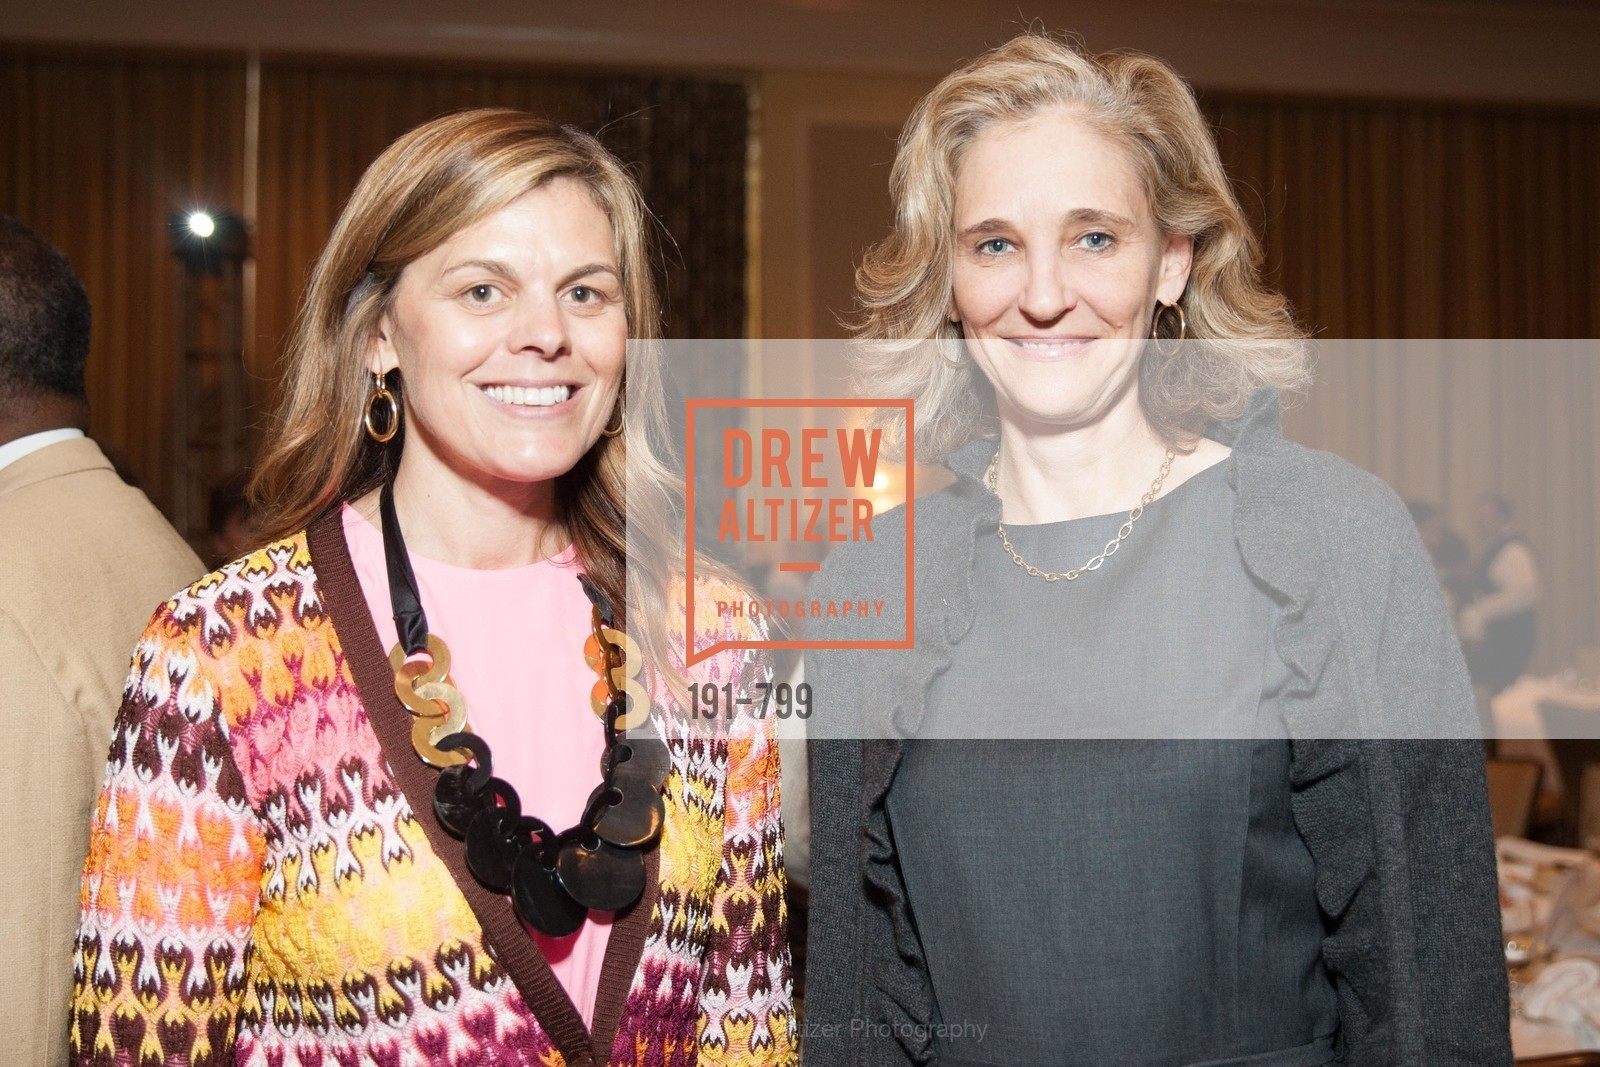 Annie Robinson Woods, Jennifer Biederbeck, COMPASSION & CHOICES - Empowerment Luncheon, US, April 24th, 2015,Drew Altizer, Drew Altizer Photography, full-service agency, private events, San Francisco photographer, photographer california